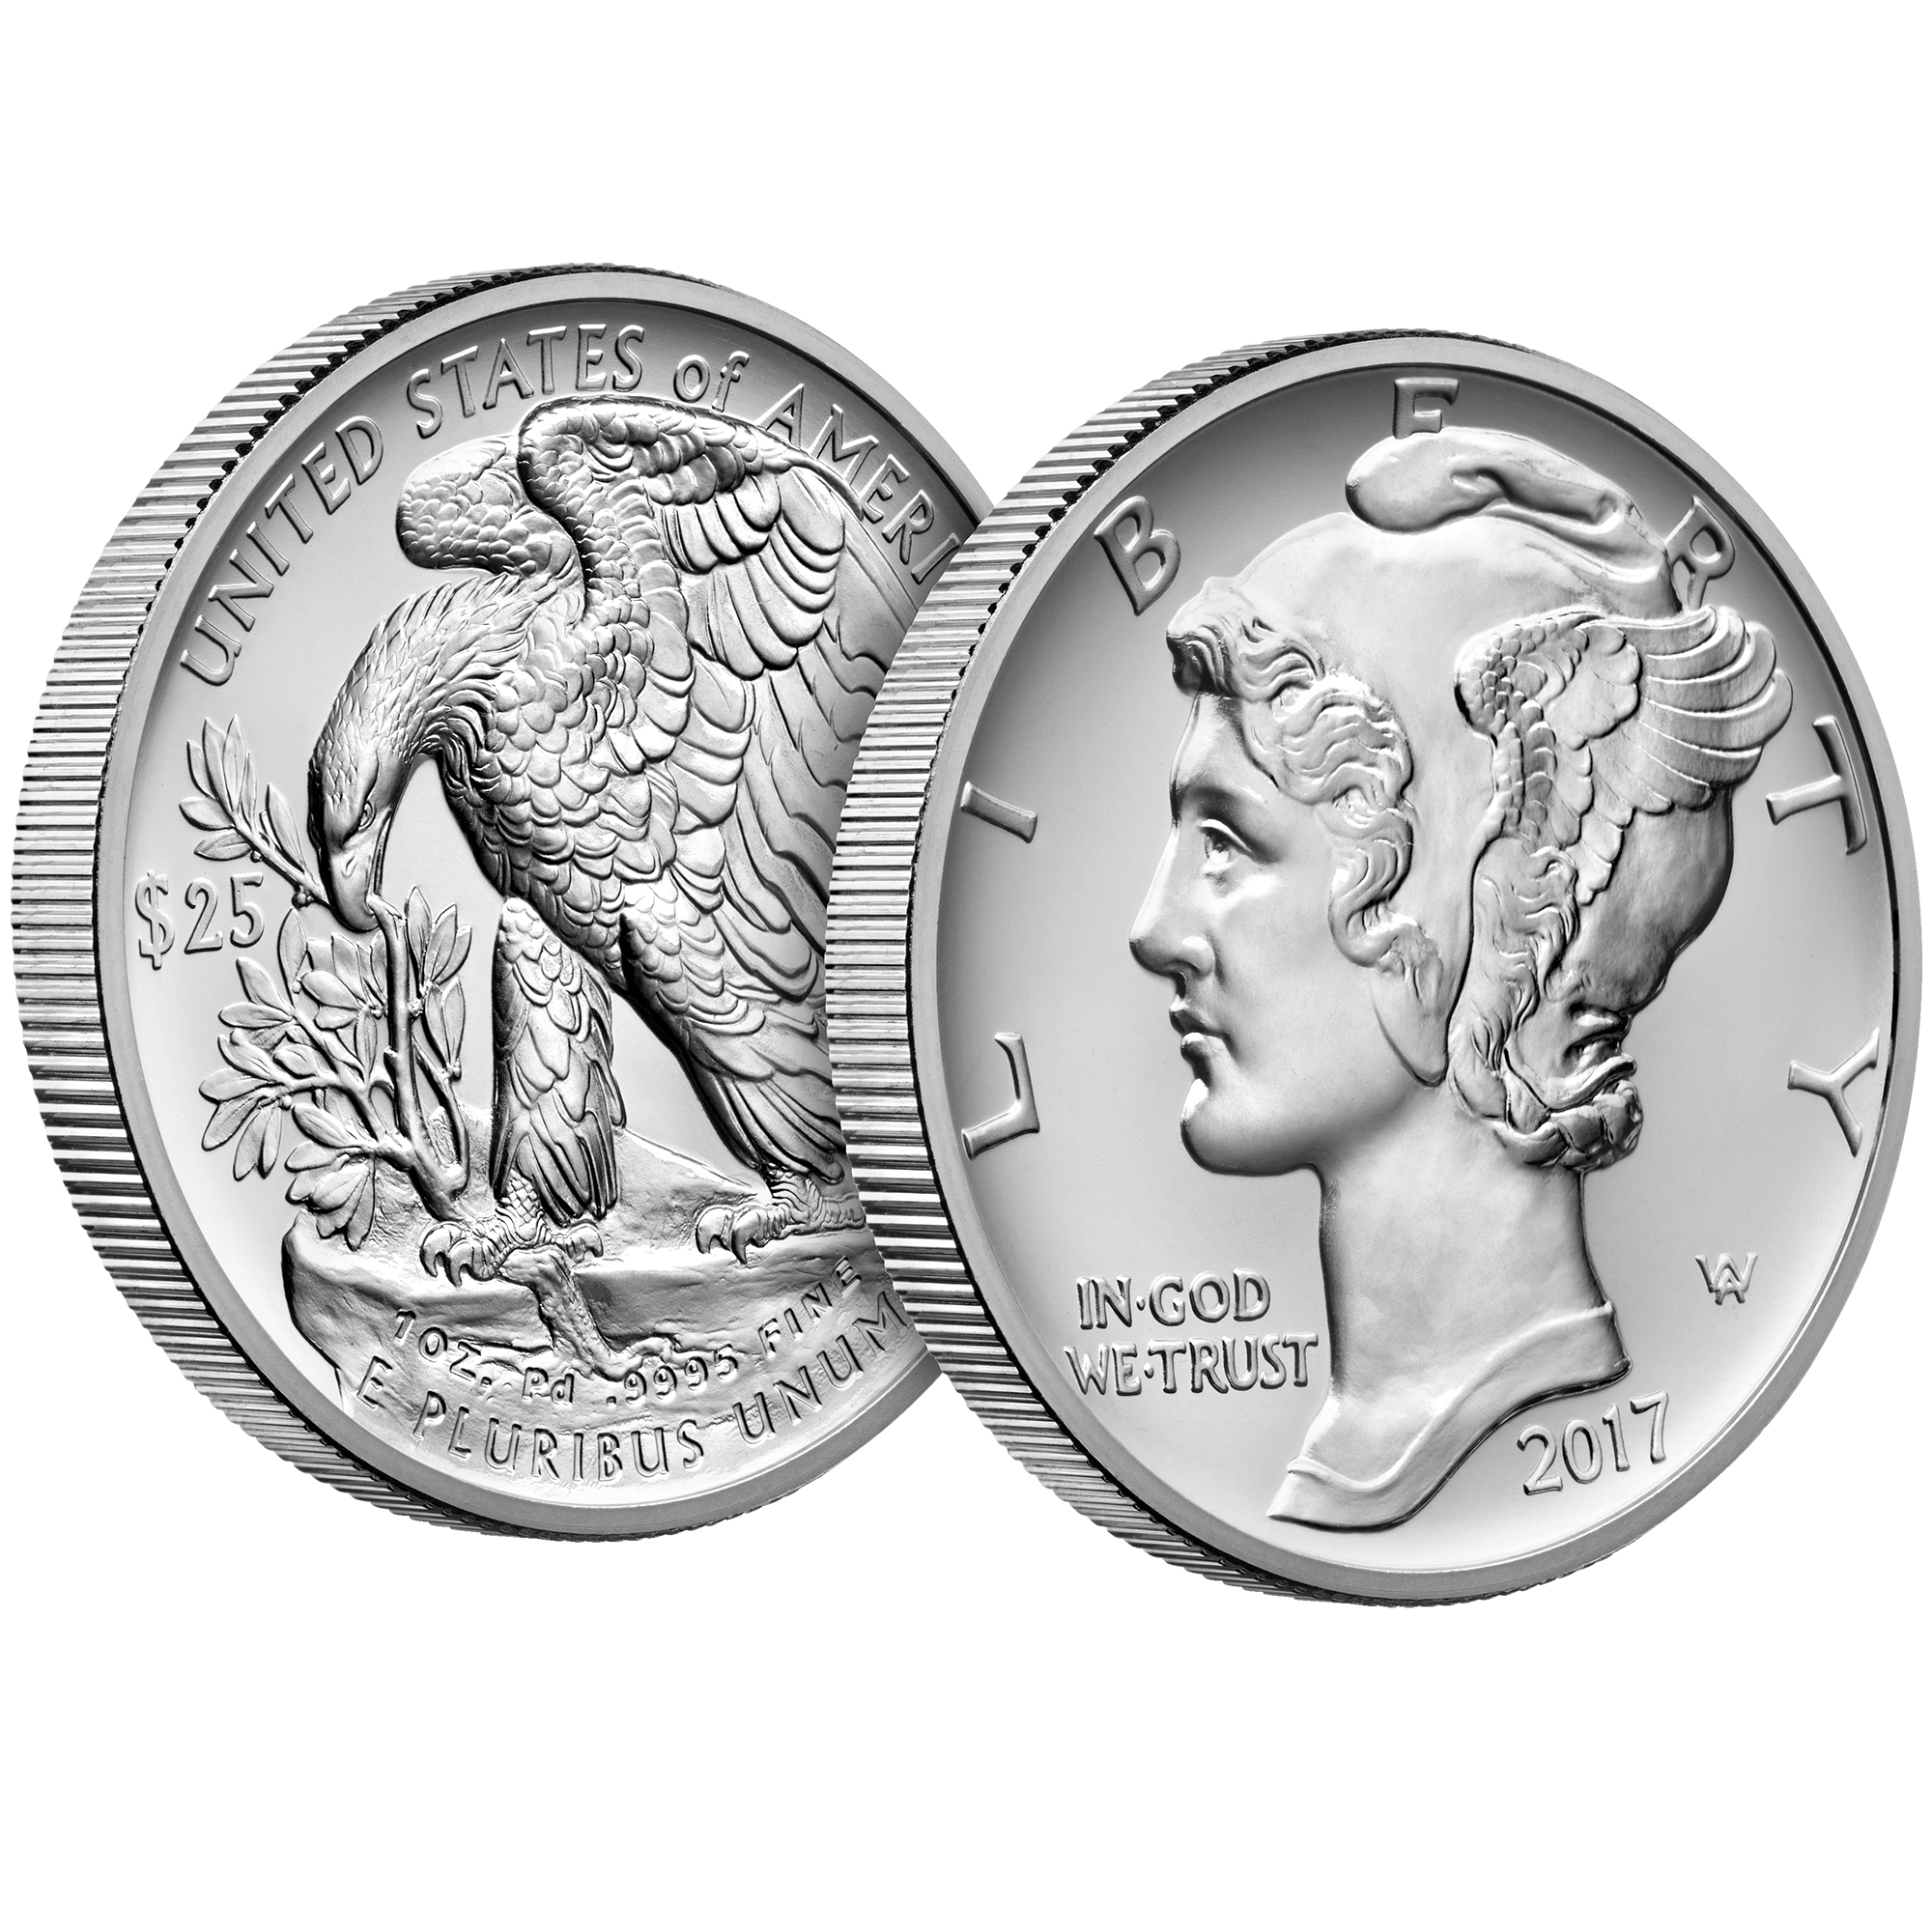 2017 Palladium One Ounce Bullion Coin Obverse-Reverse Angle